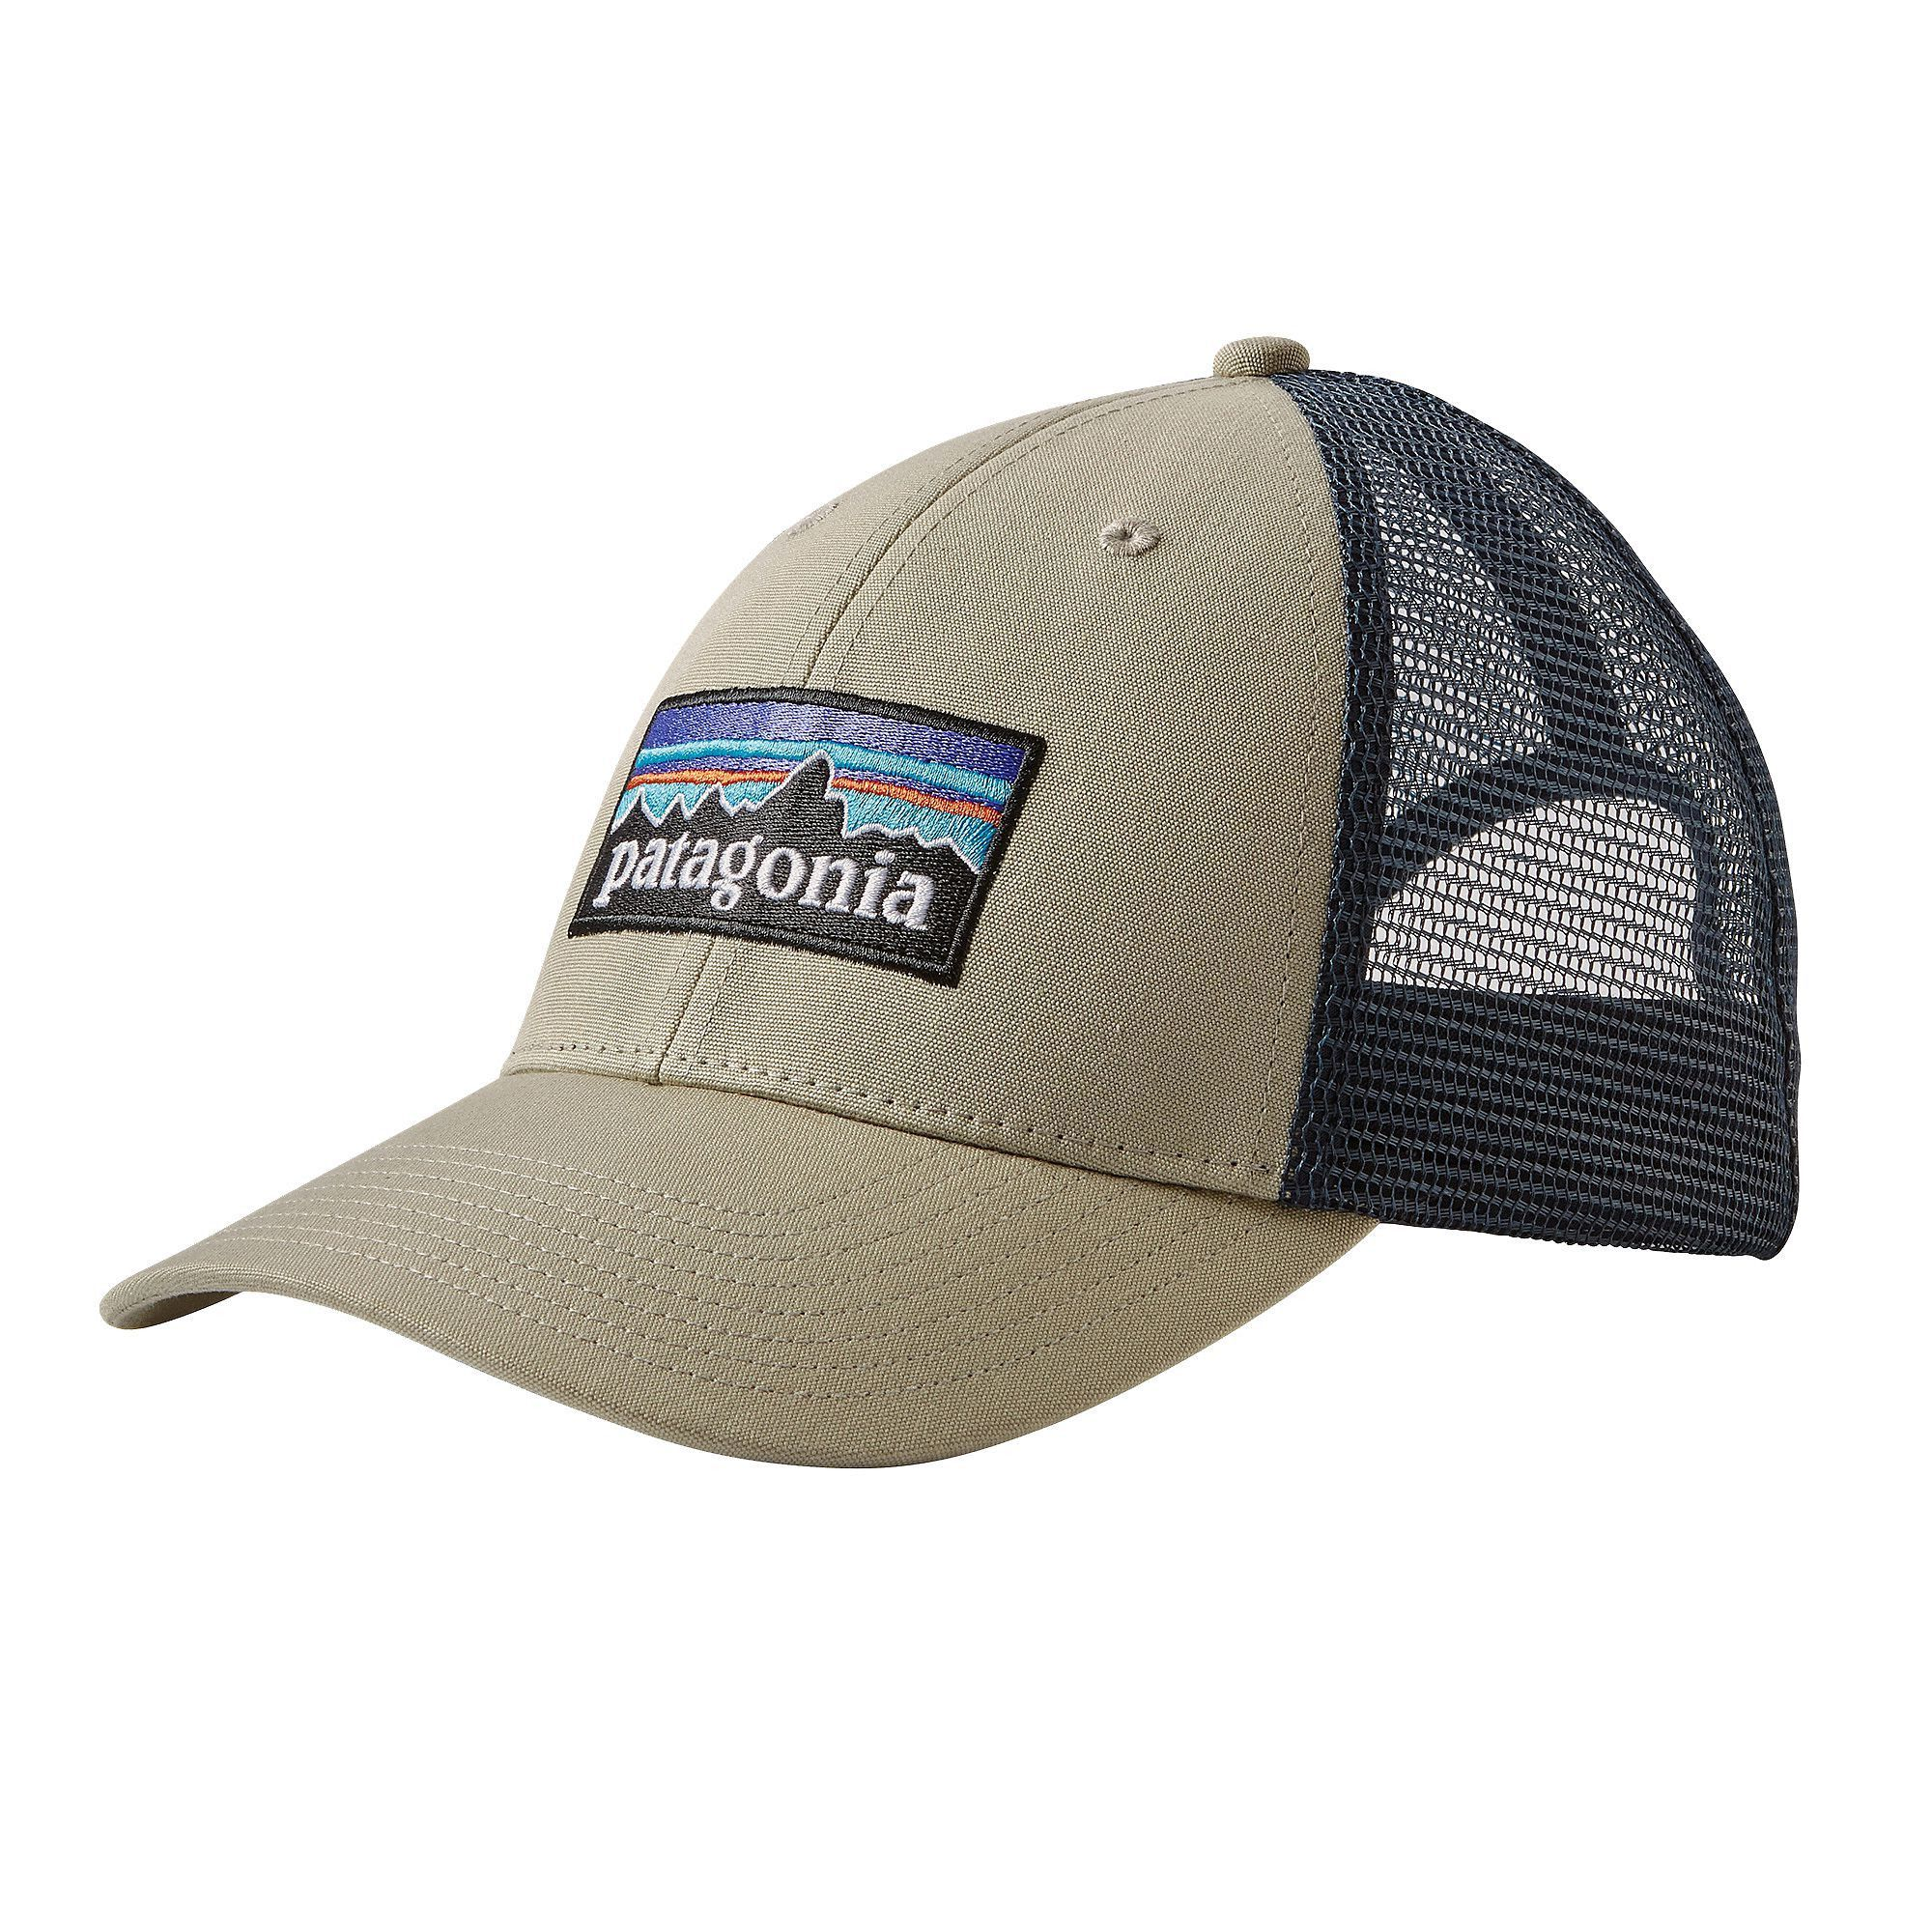 d7a19c490ac Patagonia P-6 LoPro Trucker Hat